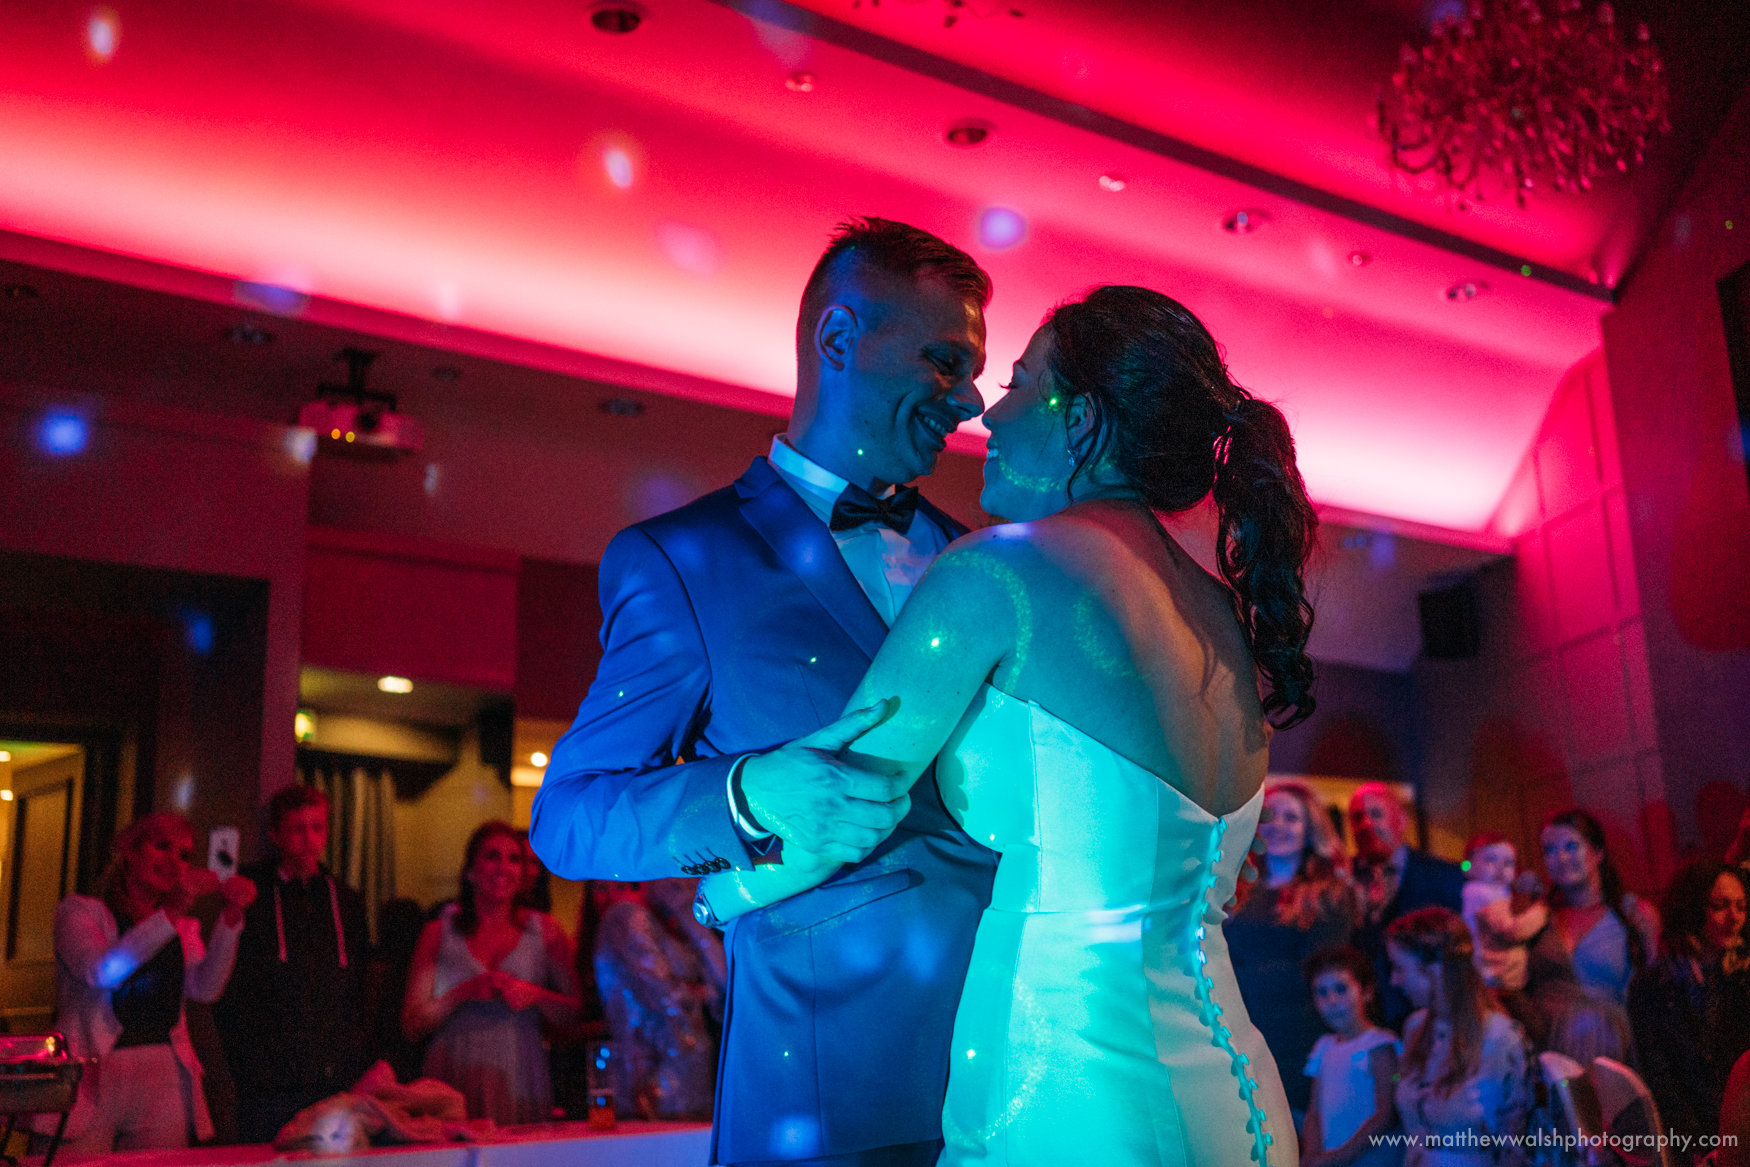 A beautiful and colourful first dance